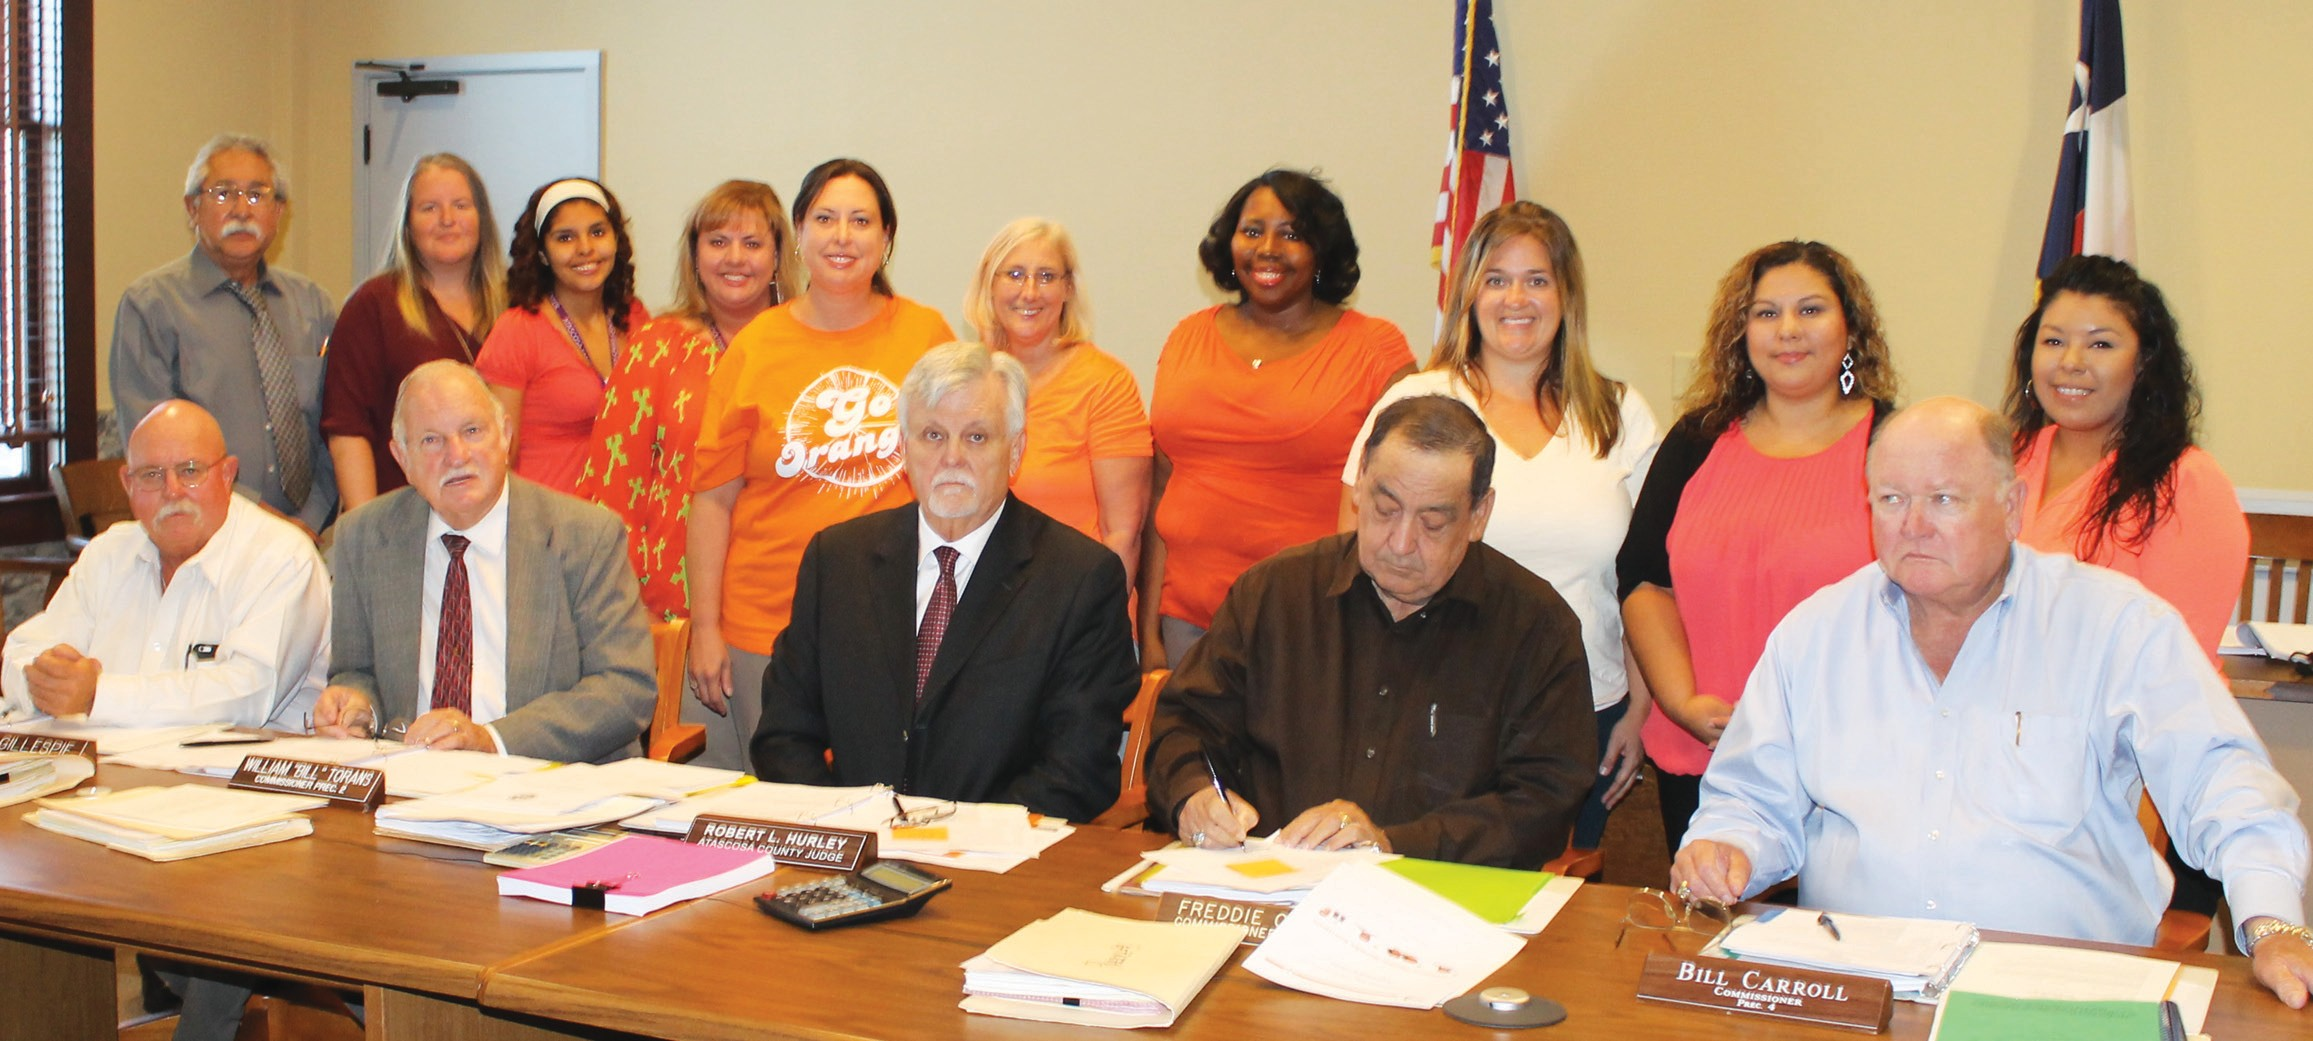 During the September 14 meeting of Commissioners' Court, September was declared '2015 Hunger Action Month'. Standing from left are, Daniel Carbajal, Workforce Solutions; Christi Sanchez; Adrianne Mendez, AFCC; Shawnene Edmondson, AFCC; Stephanie Smith, San Antonio Food Bank; Linda Harper, Wesley Nurse with MHM; Shawauna Marshall, Amy Suvall, Yvette Navarro and Erica Flores, all with BCFS Education Services - Head Start, Atascosa County. Seated are Commissioner Lonnie Gillespie, Pct. 1; Commissioner Bill Torans, Pct. 2; County Judge Bob Hurley; Commissioner Freddie Ogden, Pct. 3 and Bill Carroll, Pct. 4.